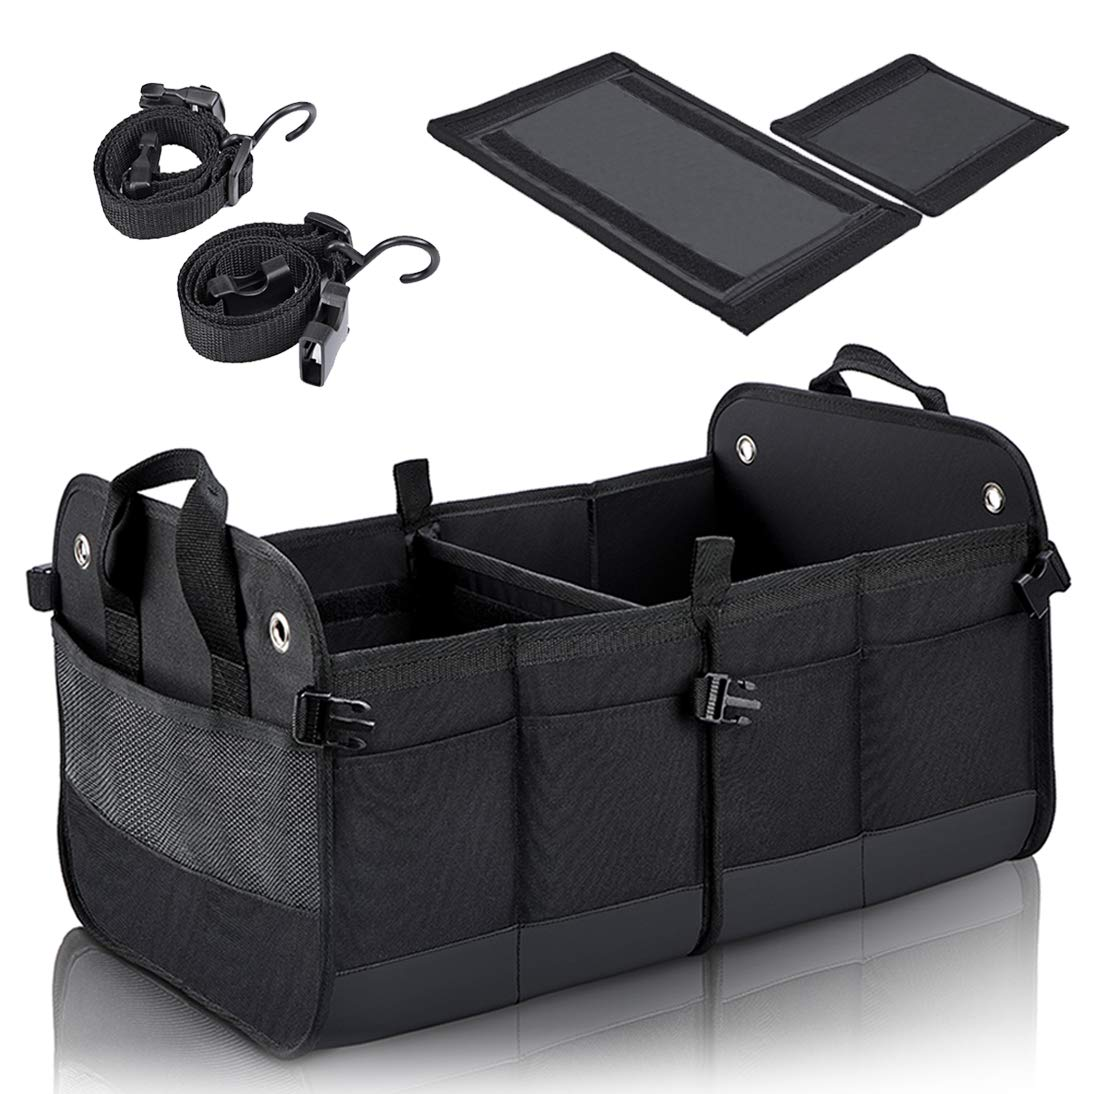 COVAX Car Trunk Organizer, Collapsible SUV Storage, Non Slip Bottom, Securing Straps, Black by COVAX